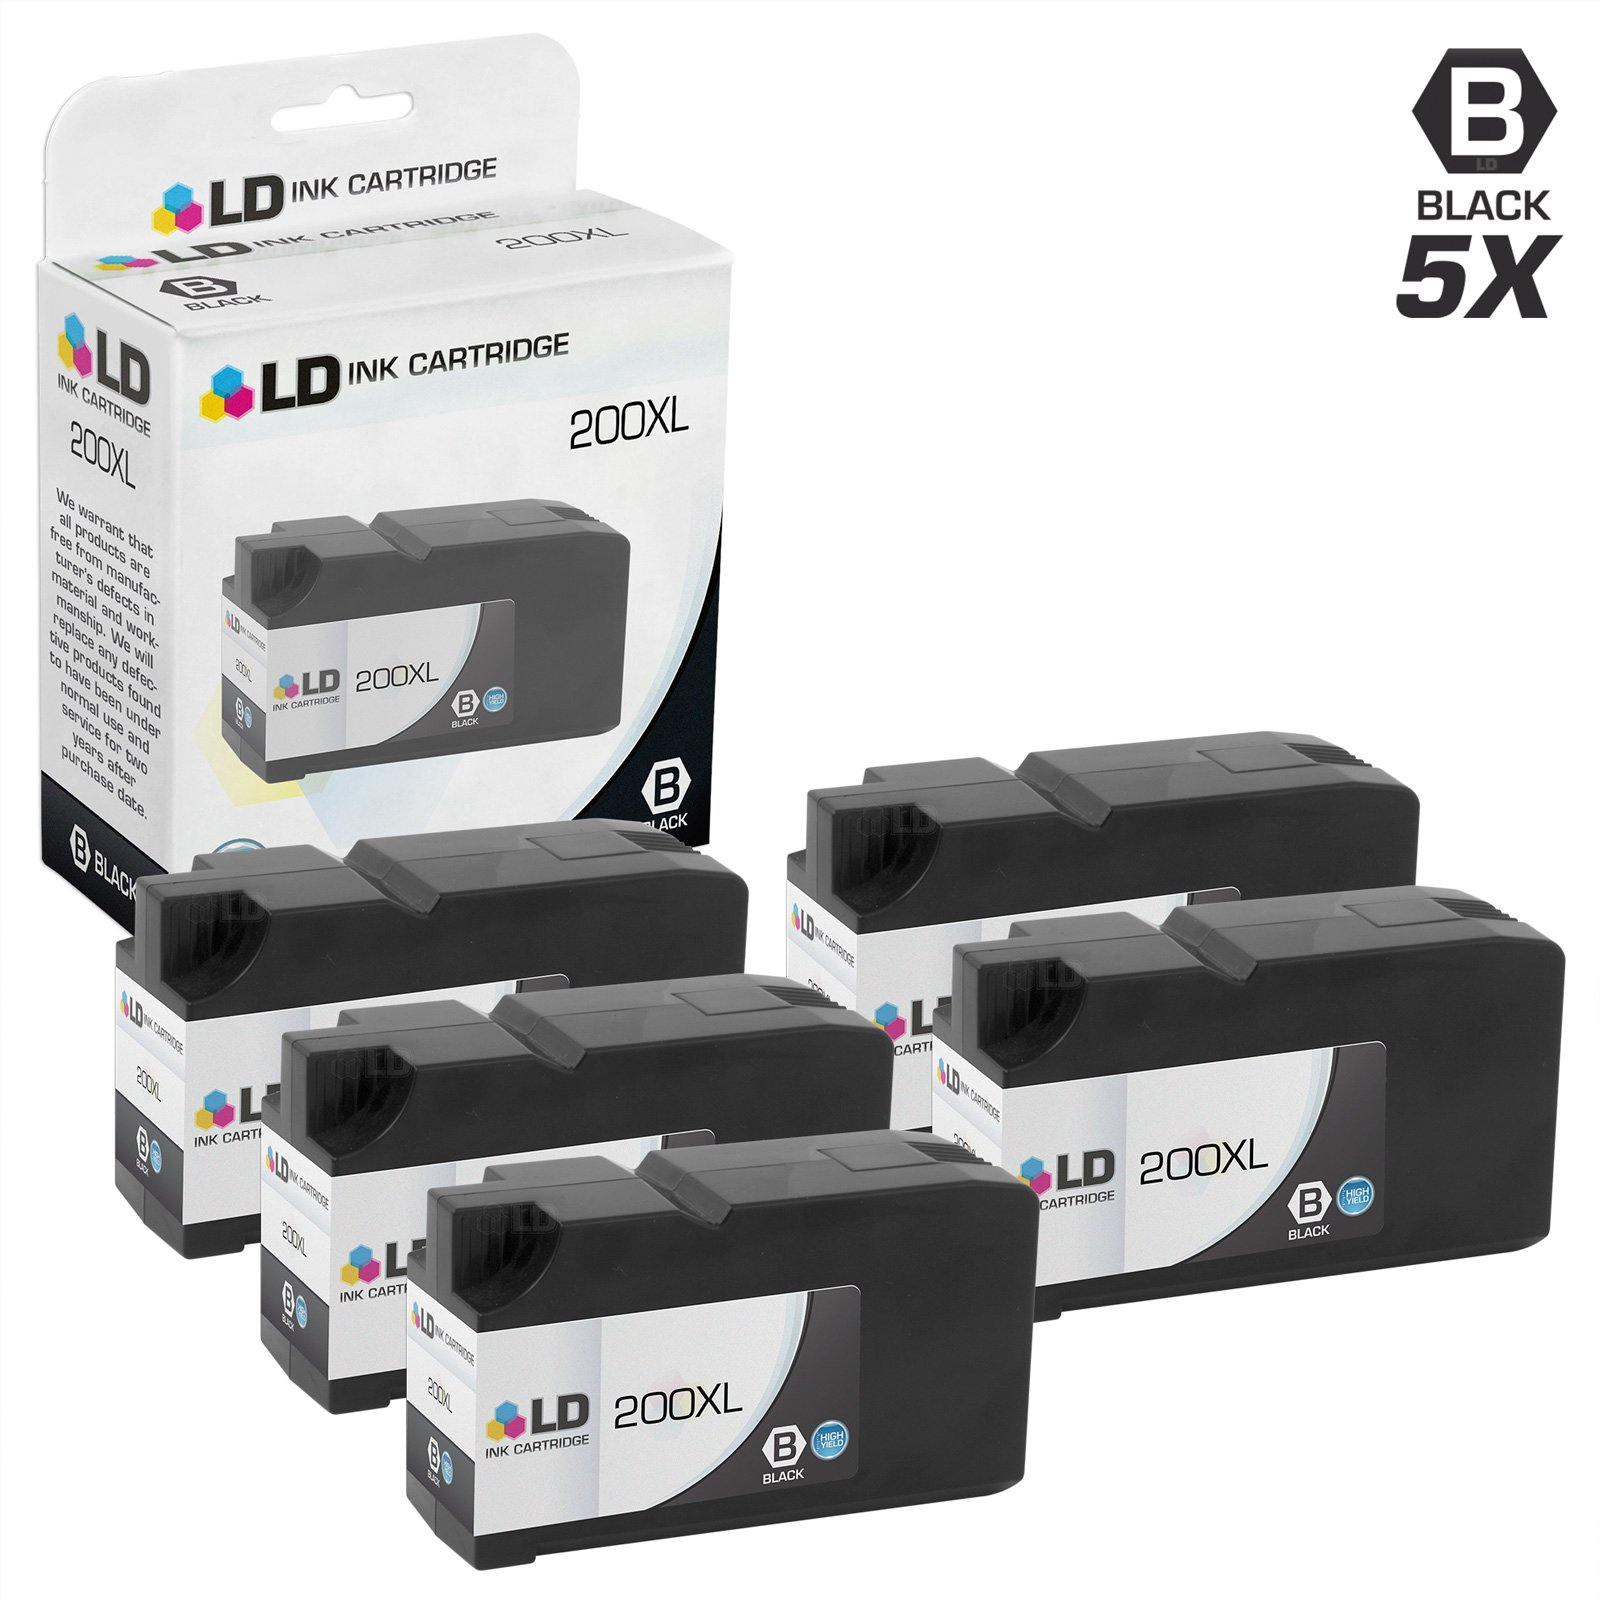 LD Compatible Ink Cartridge Replacement for Lexmark 200XL 14L0174 High Yield (Black, 5-Pack)